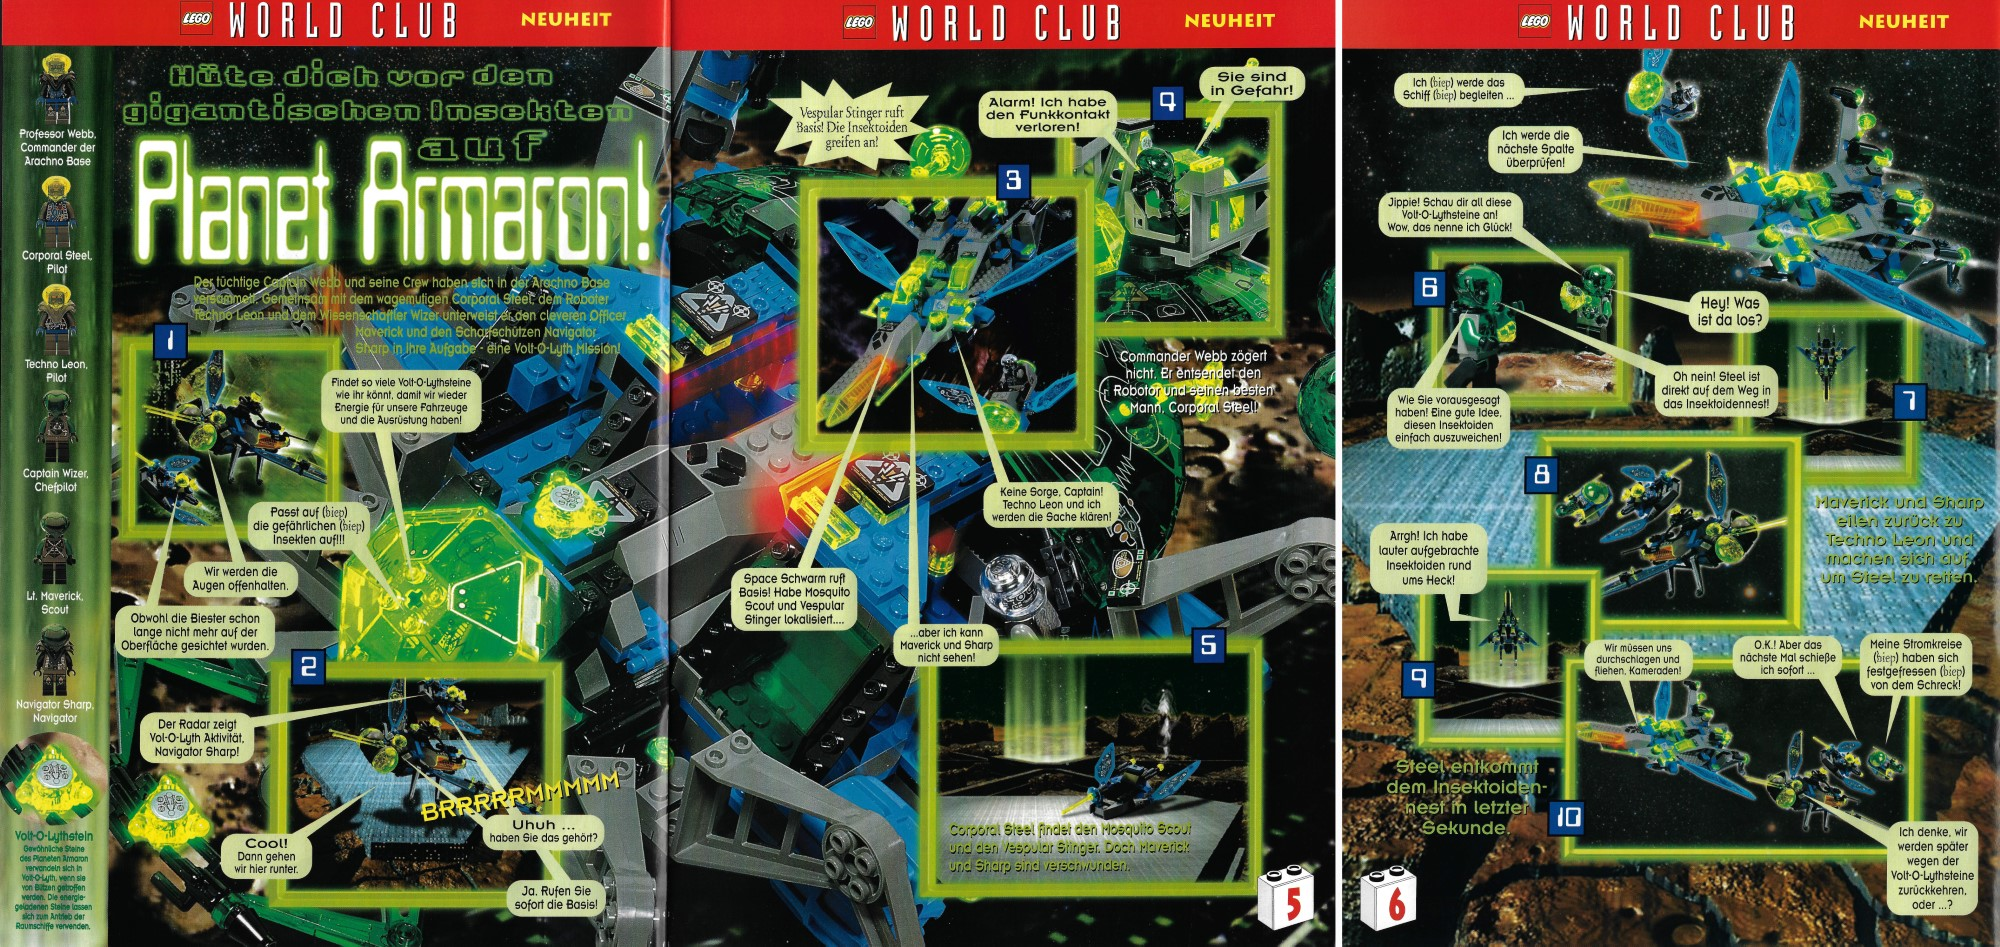 LEGO Insectoids World Club Magazin 1998 09 10